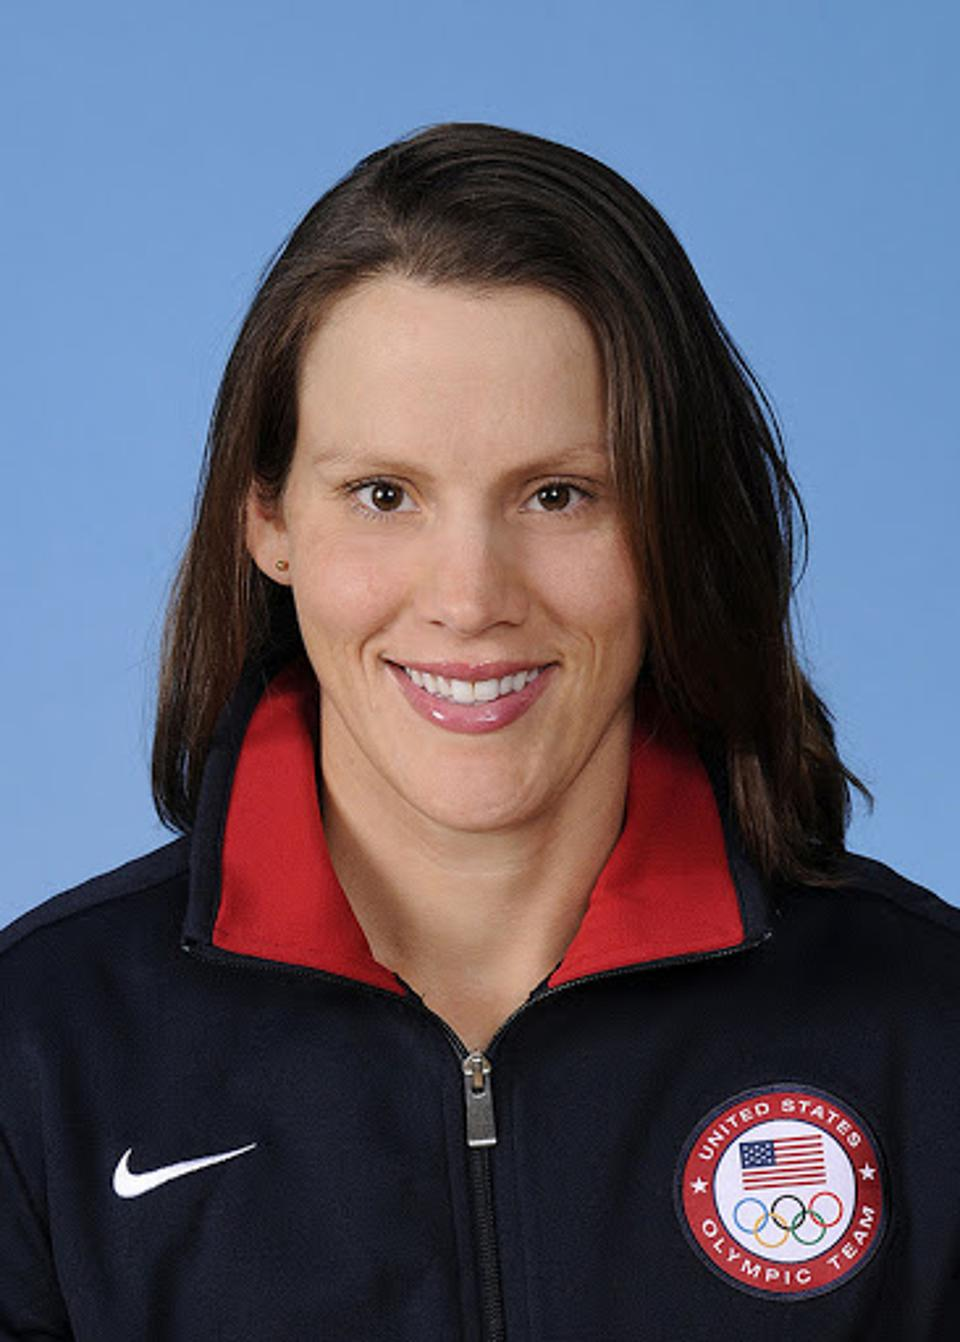 Olympic gold medalist (rowing), Caryn Davies.